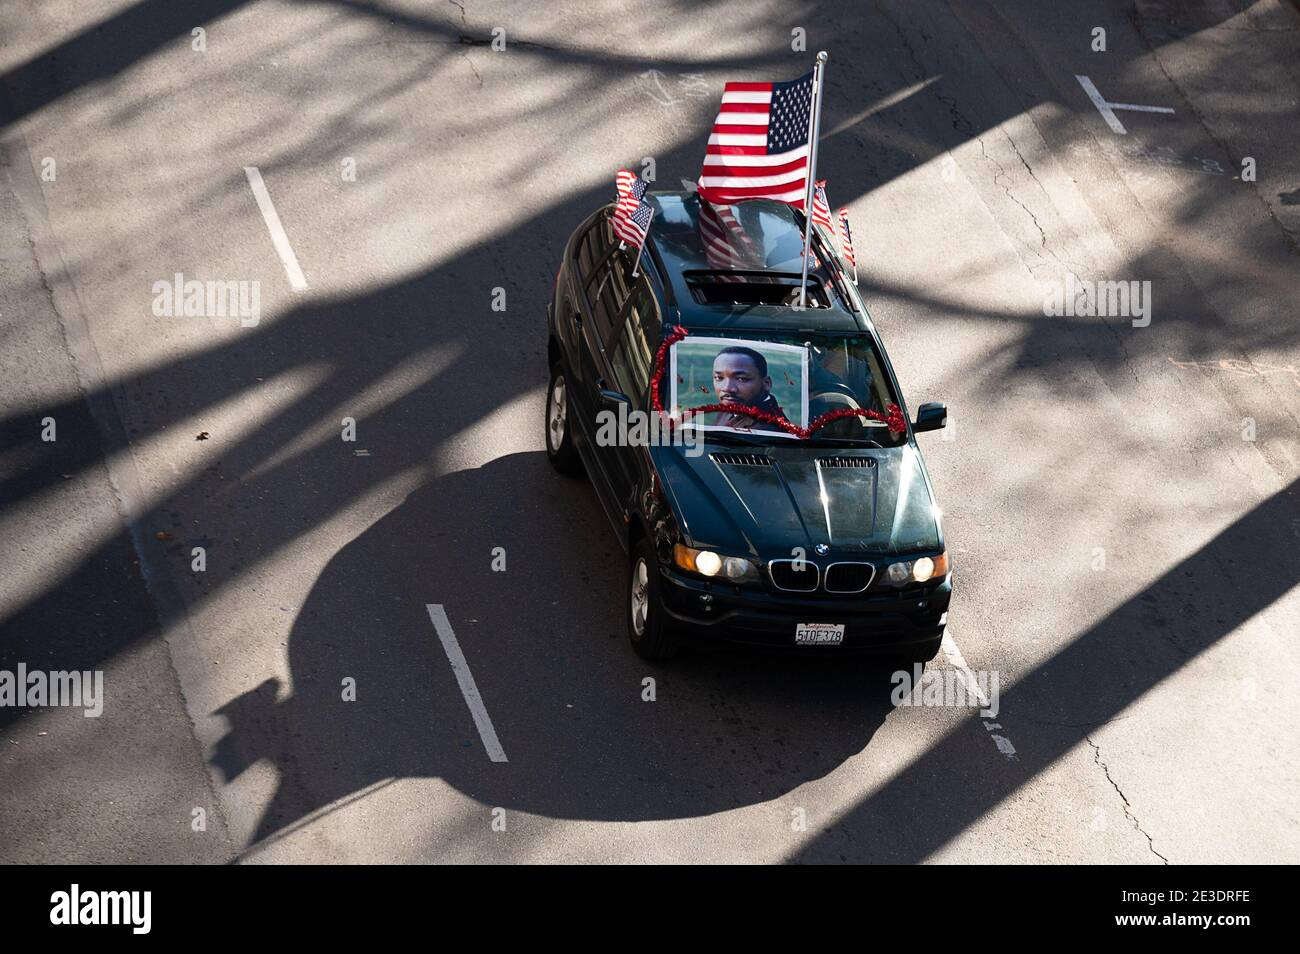 Sacramento, CA, USA. 18th Jan, 2021. 100Õs of cars drive past the state capitol during the #ReclaimMLK Day car caravan in celebration of Martin Luther King Jr.Õs birthday sponsored by Black Lives Sacramento and NCAAP on Monday, Jan. 18, 2021 in Sacramento. Credit: Paul Kitagaki Jr./ZUMA Wire/Alamy Live News Stock Photo